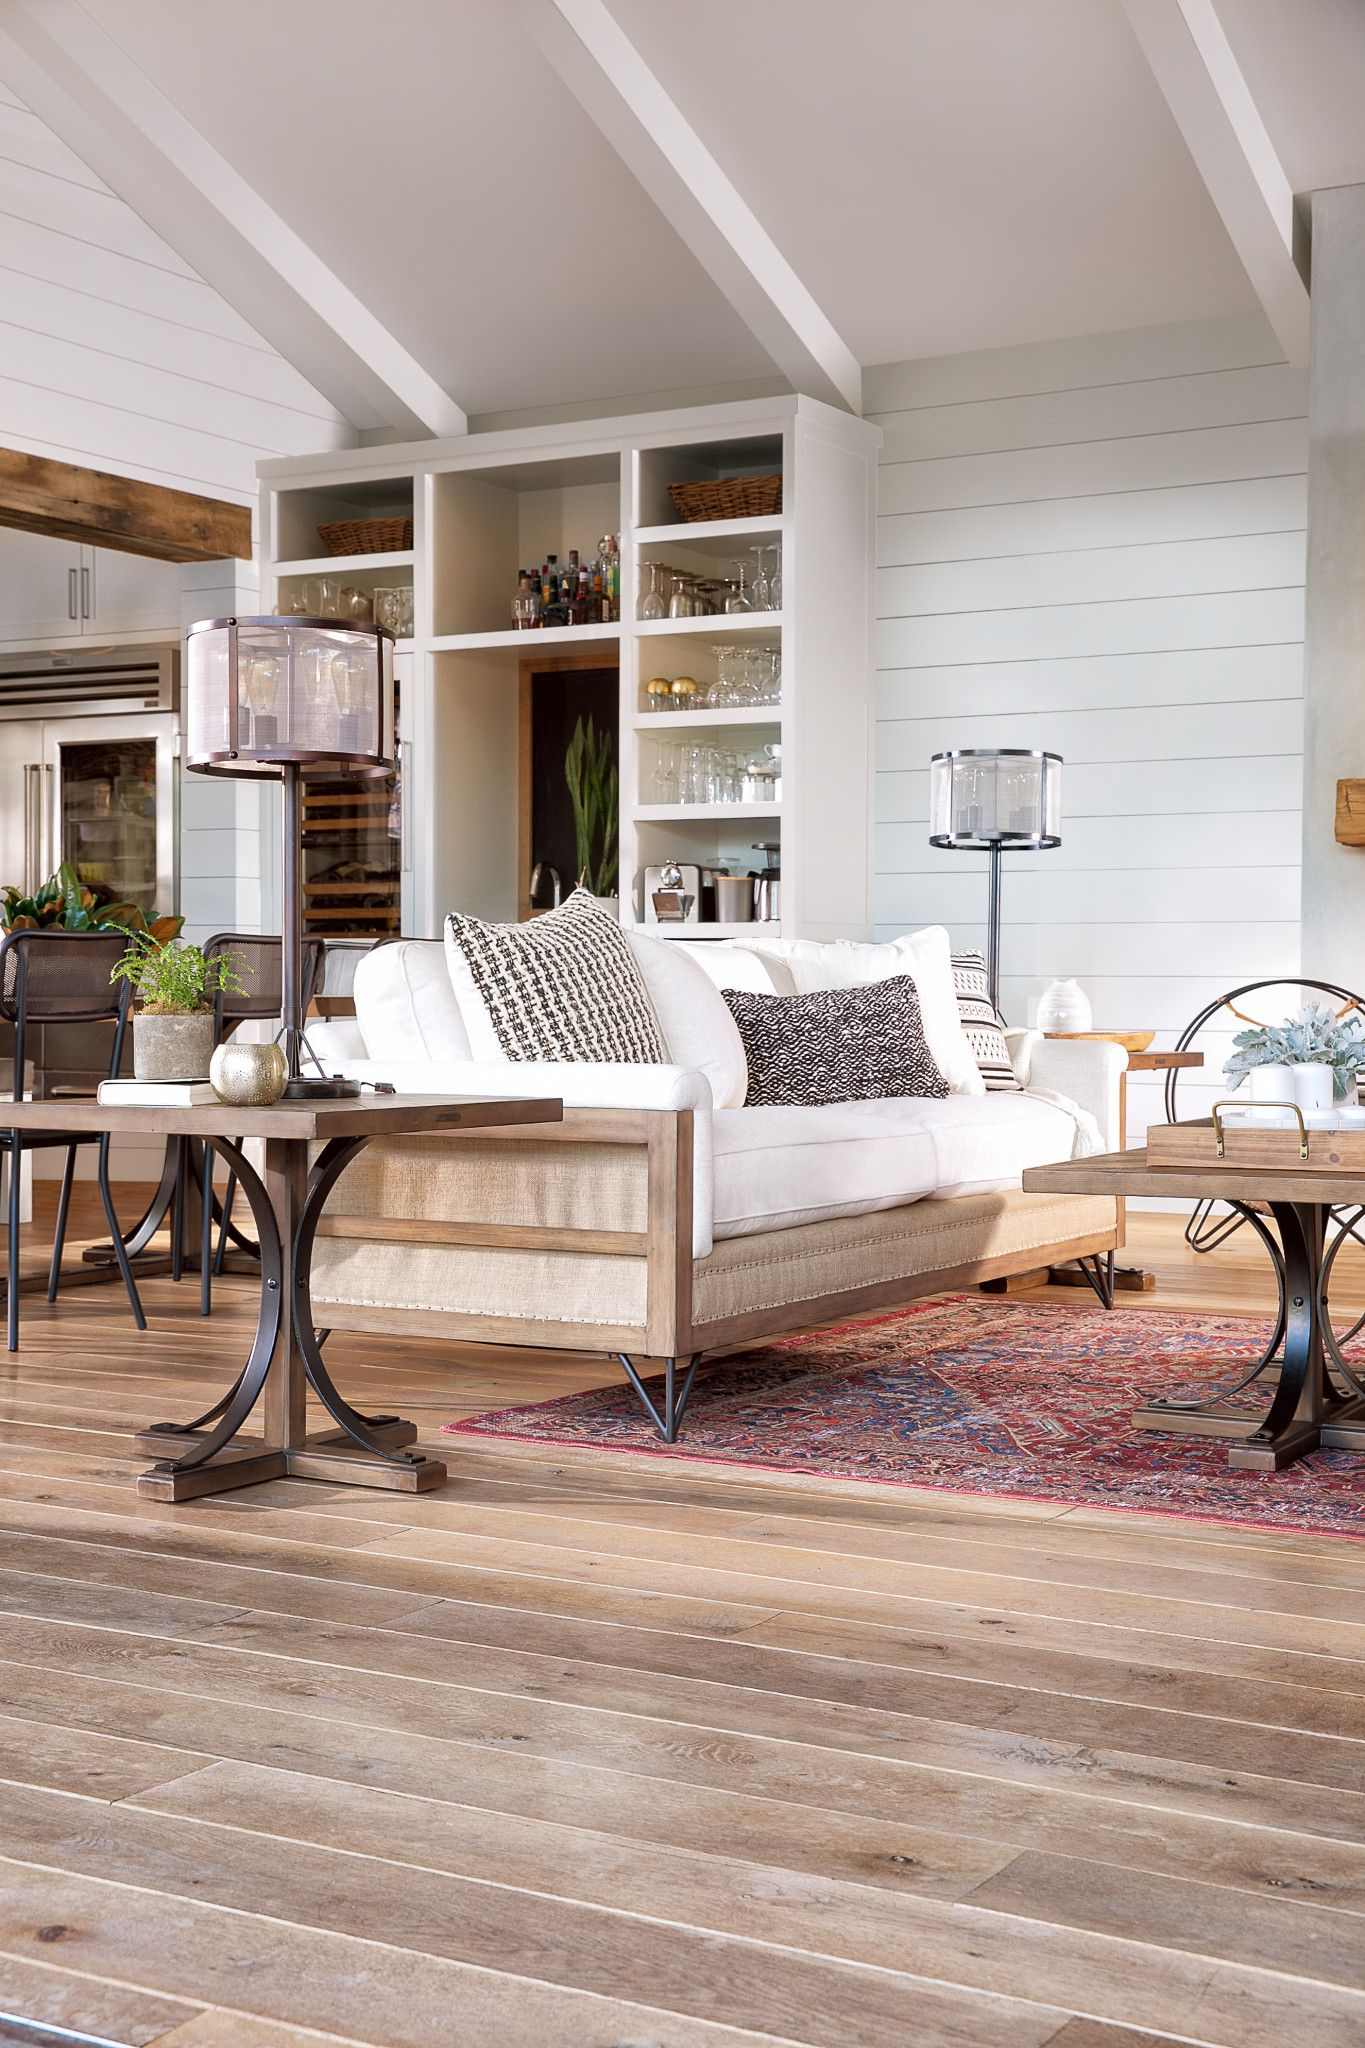 Magnolia Home Paradigm Loveseatjoanna Gaines In 2018 | Magnolia Pertaining To Magnolia Home Paradigm Sofa Chairs By Joanna Gaines (View 4 of 20)